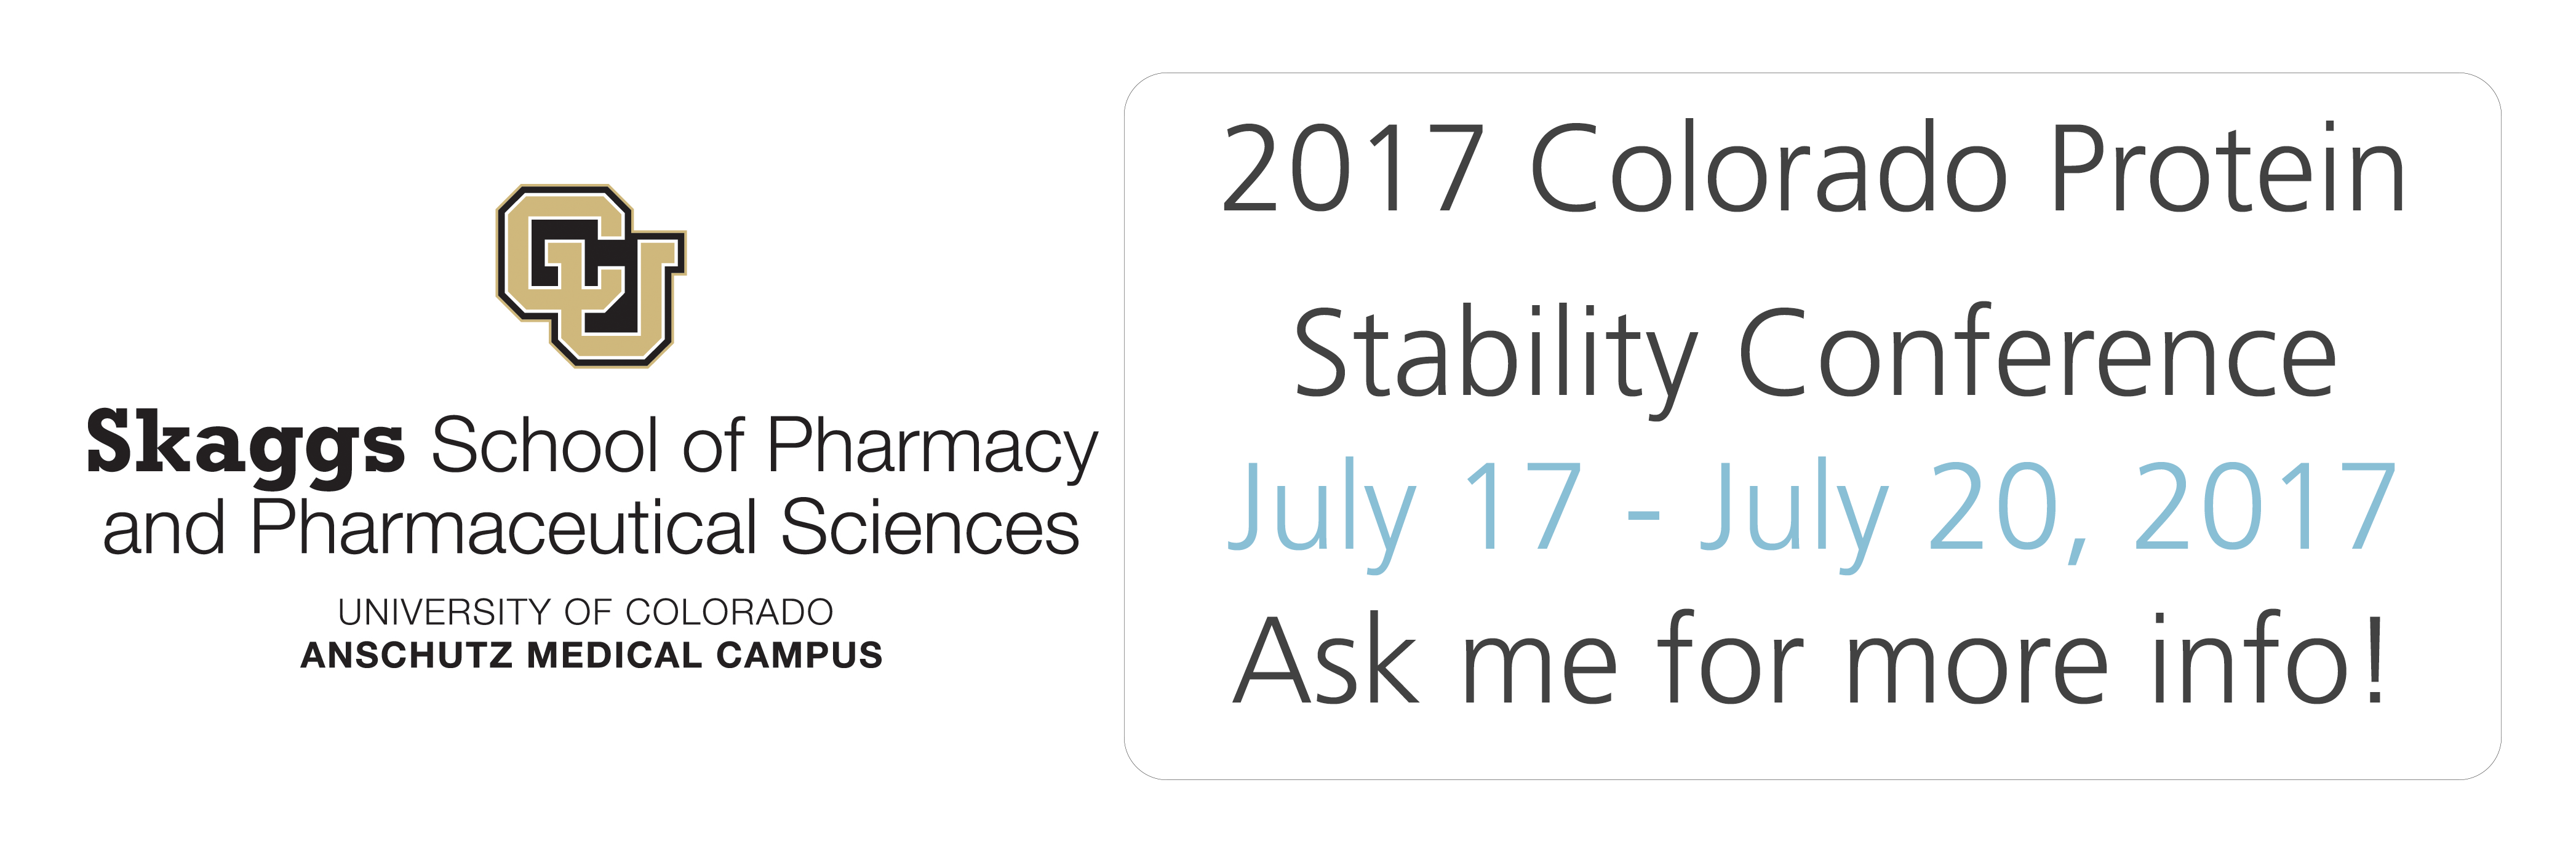 2017 Colorado Protein Stability Conference.png